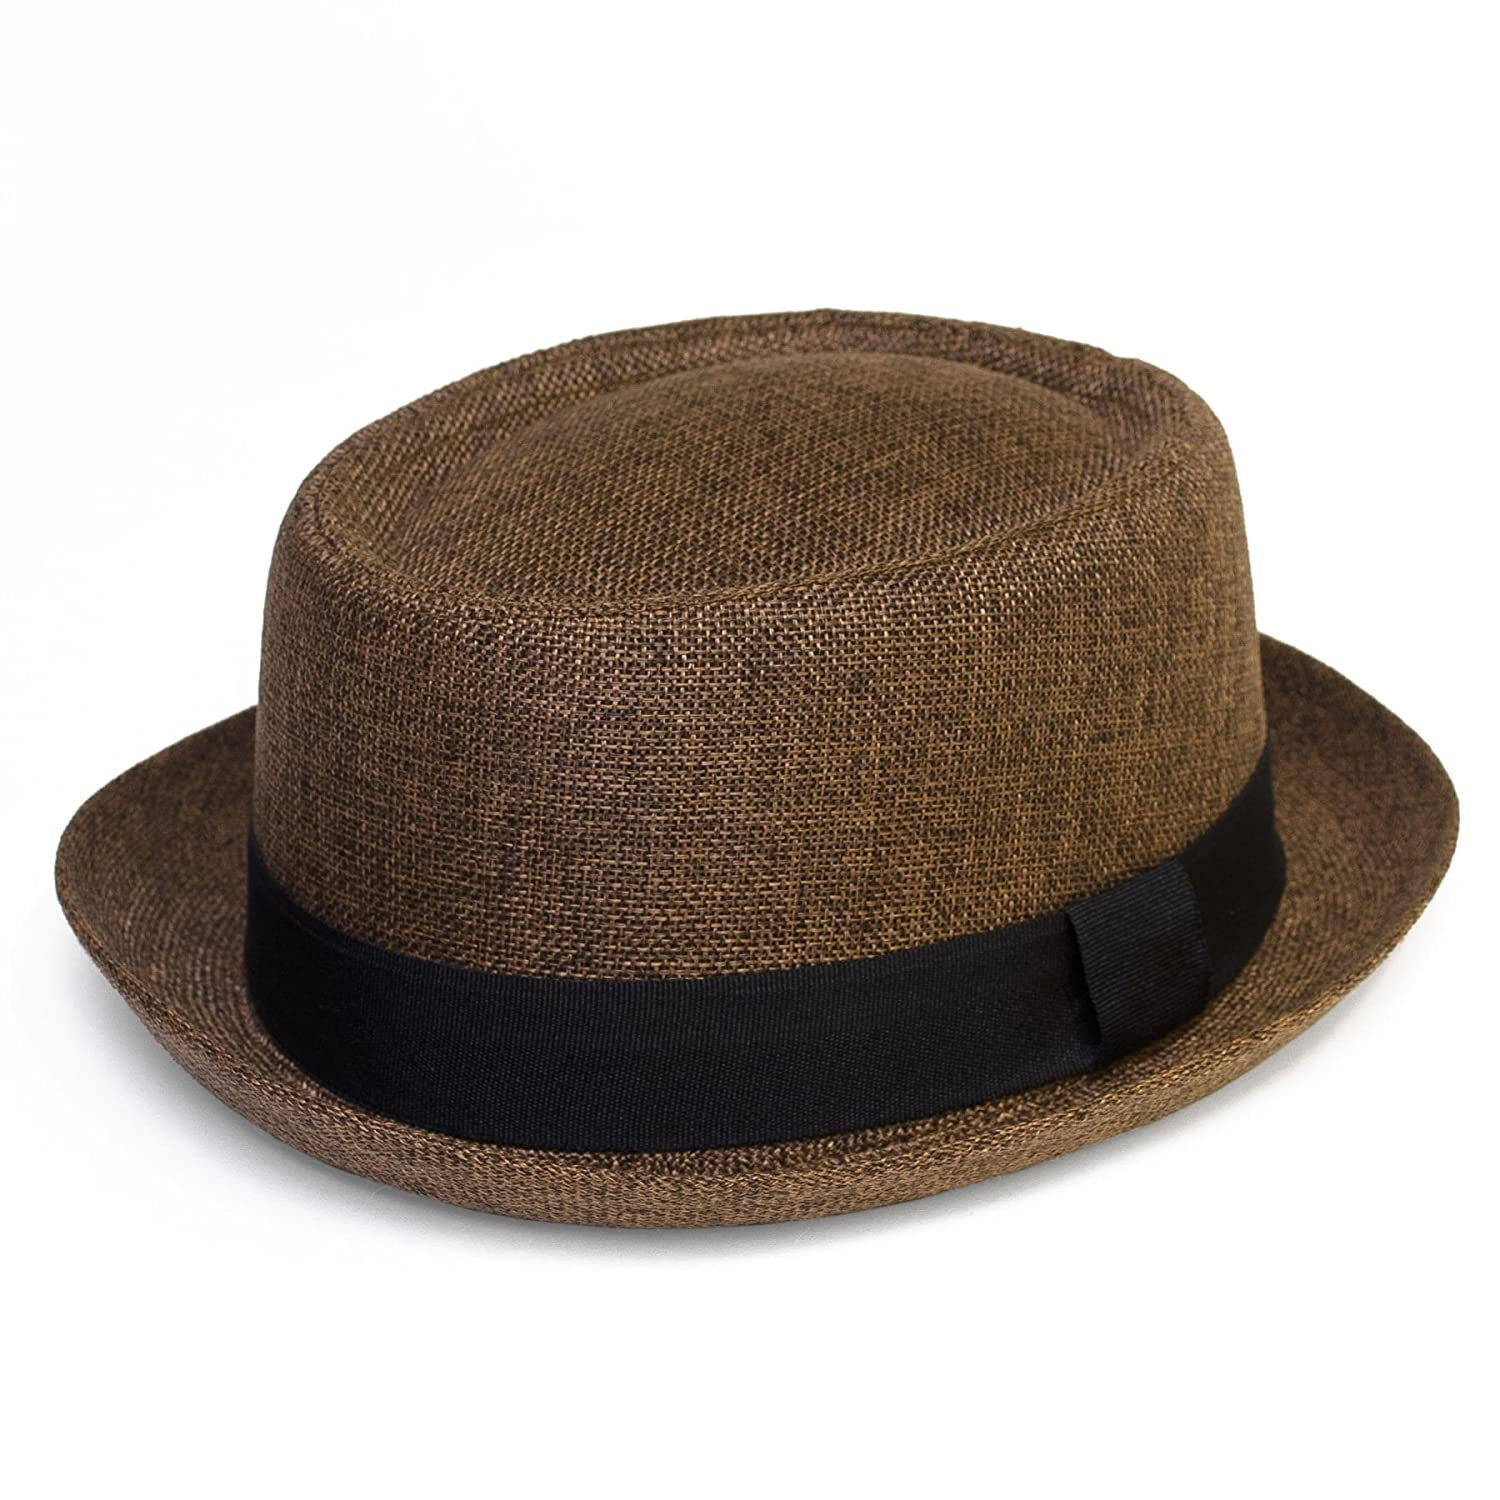 Pork Pie Hat with Narrow Brim and a Contrasting Band - Ladies Womens Mens Unisex Hat